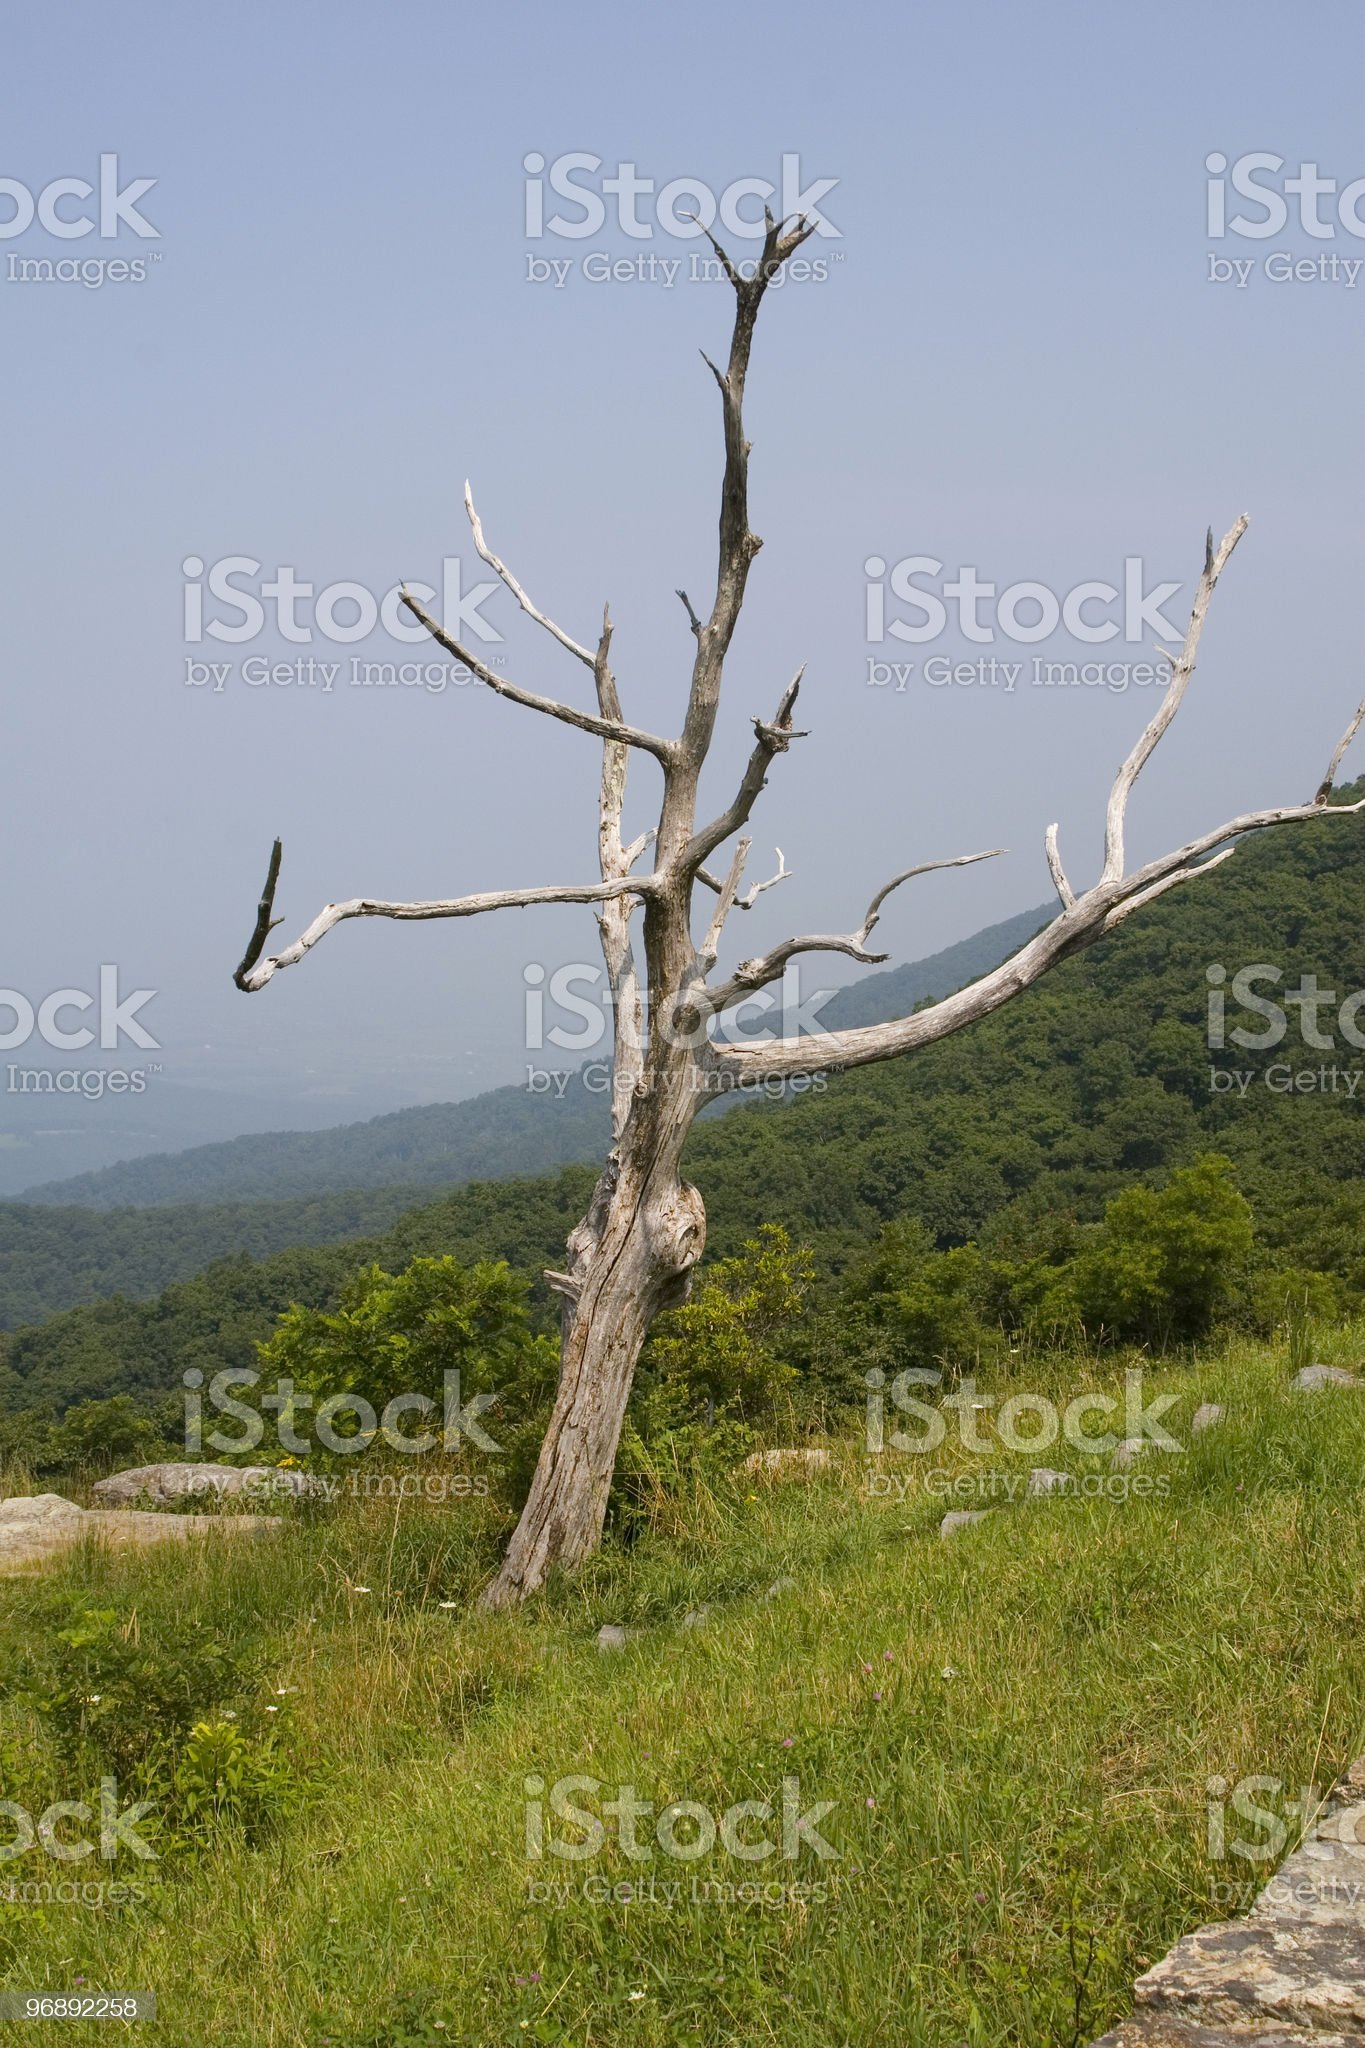 Timber hollow overlook, Skyline drive, Shenandoah national park royalty-free stock photo